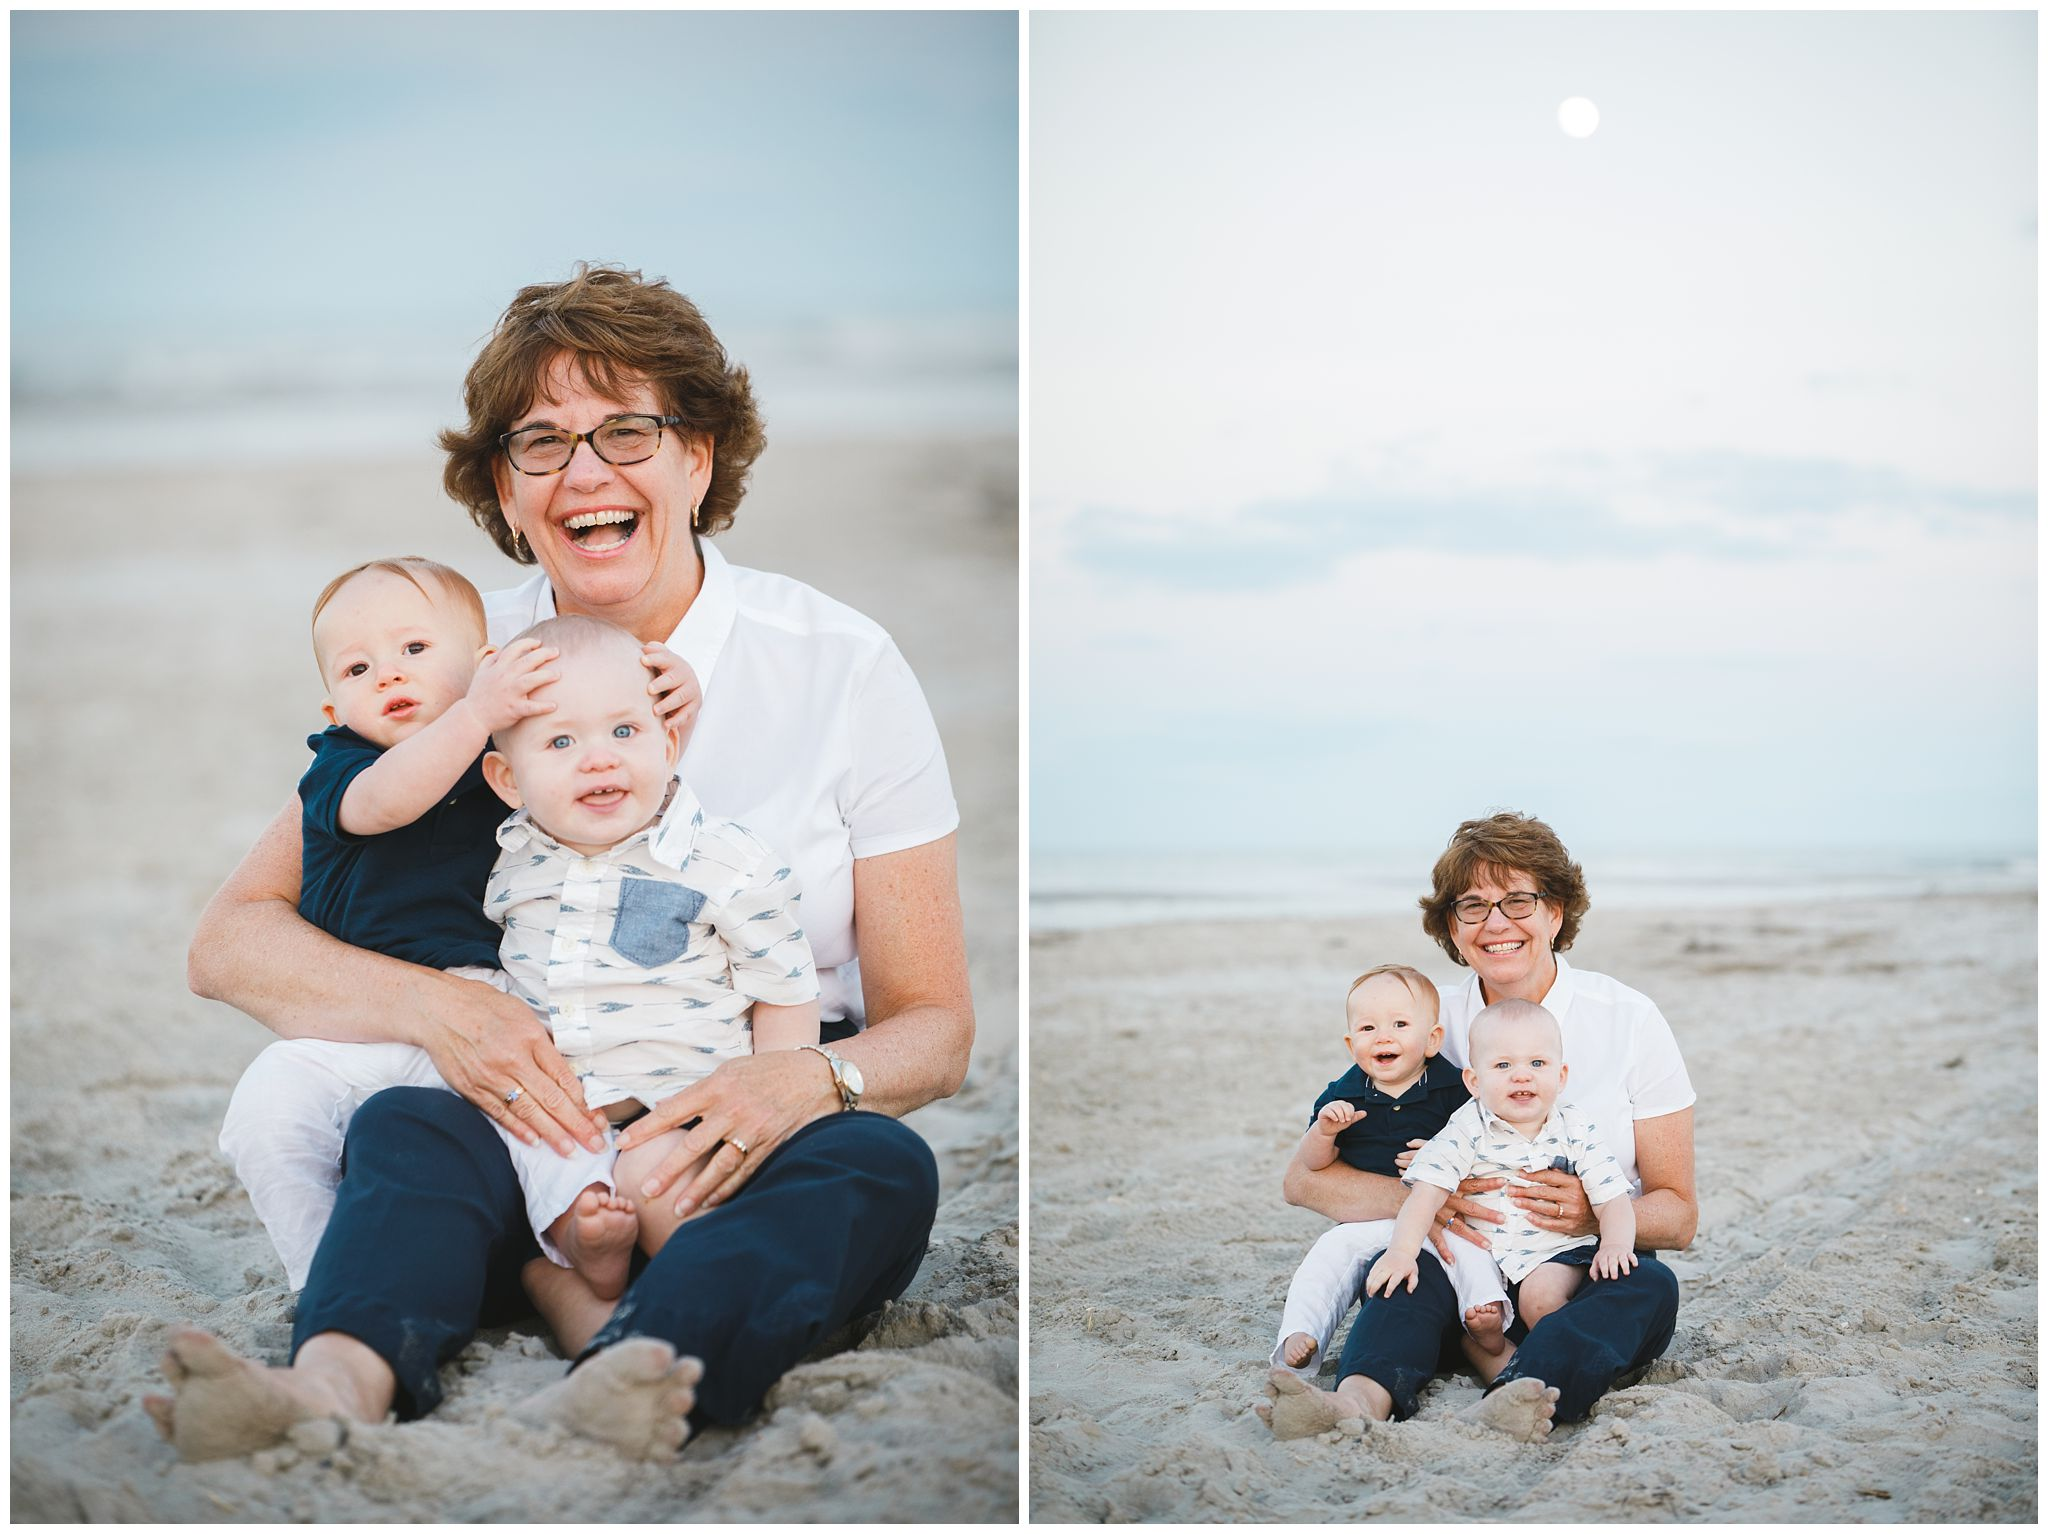 Baby Photography Children Family Portraits On The Beach Kids Maternity